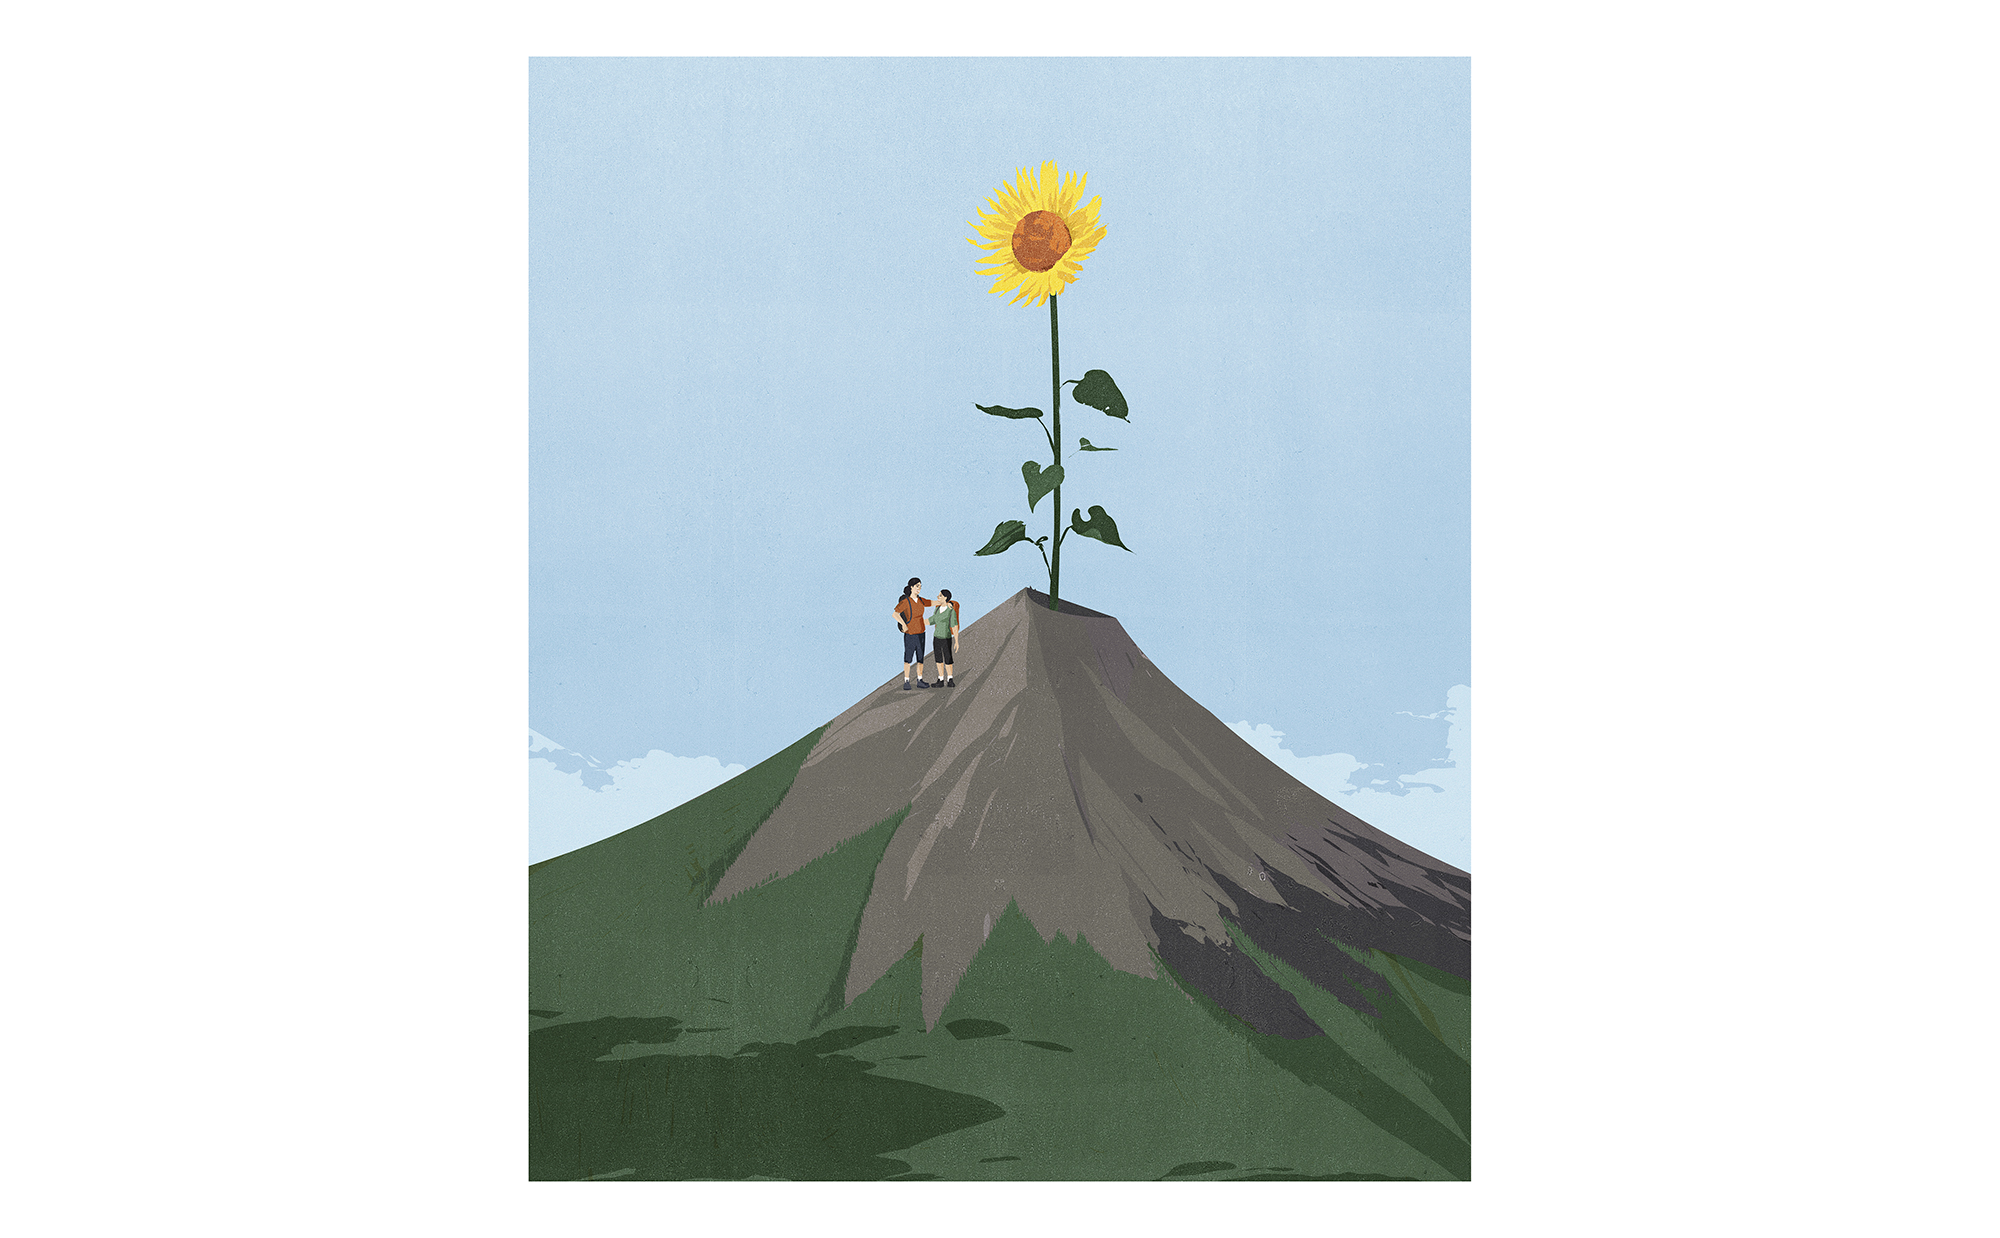 Illustration: mother and son on mountain with sunflower